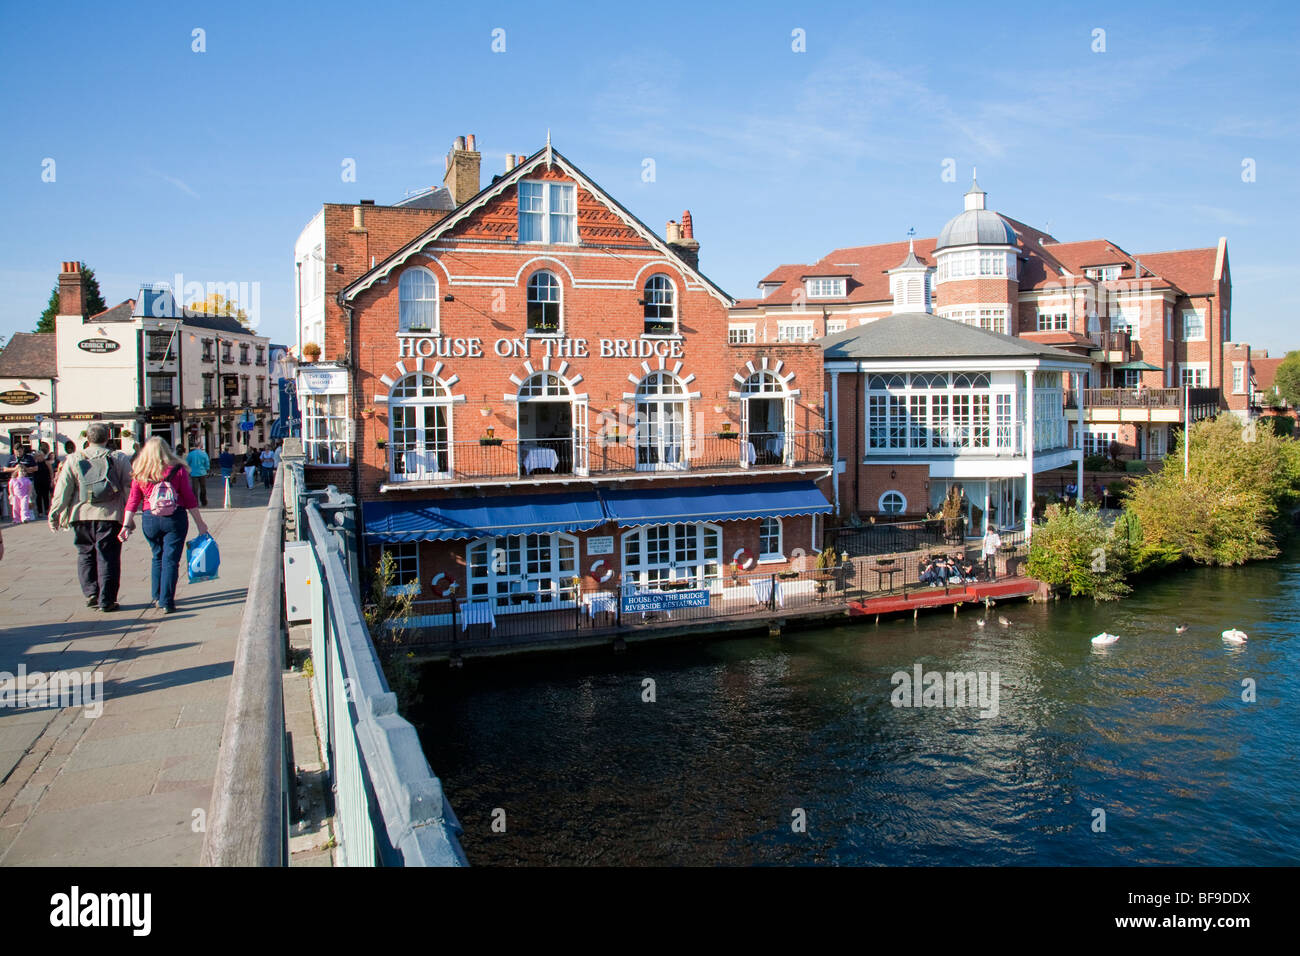 House on the Bridge restaurant next to Eton Bridge on the River Thames, Windsor UK - Stock Image